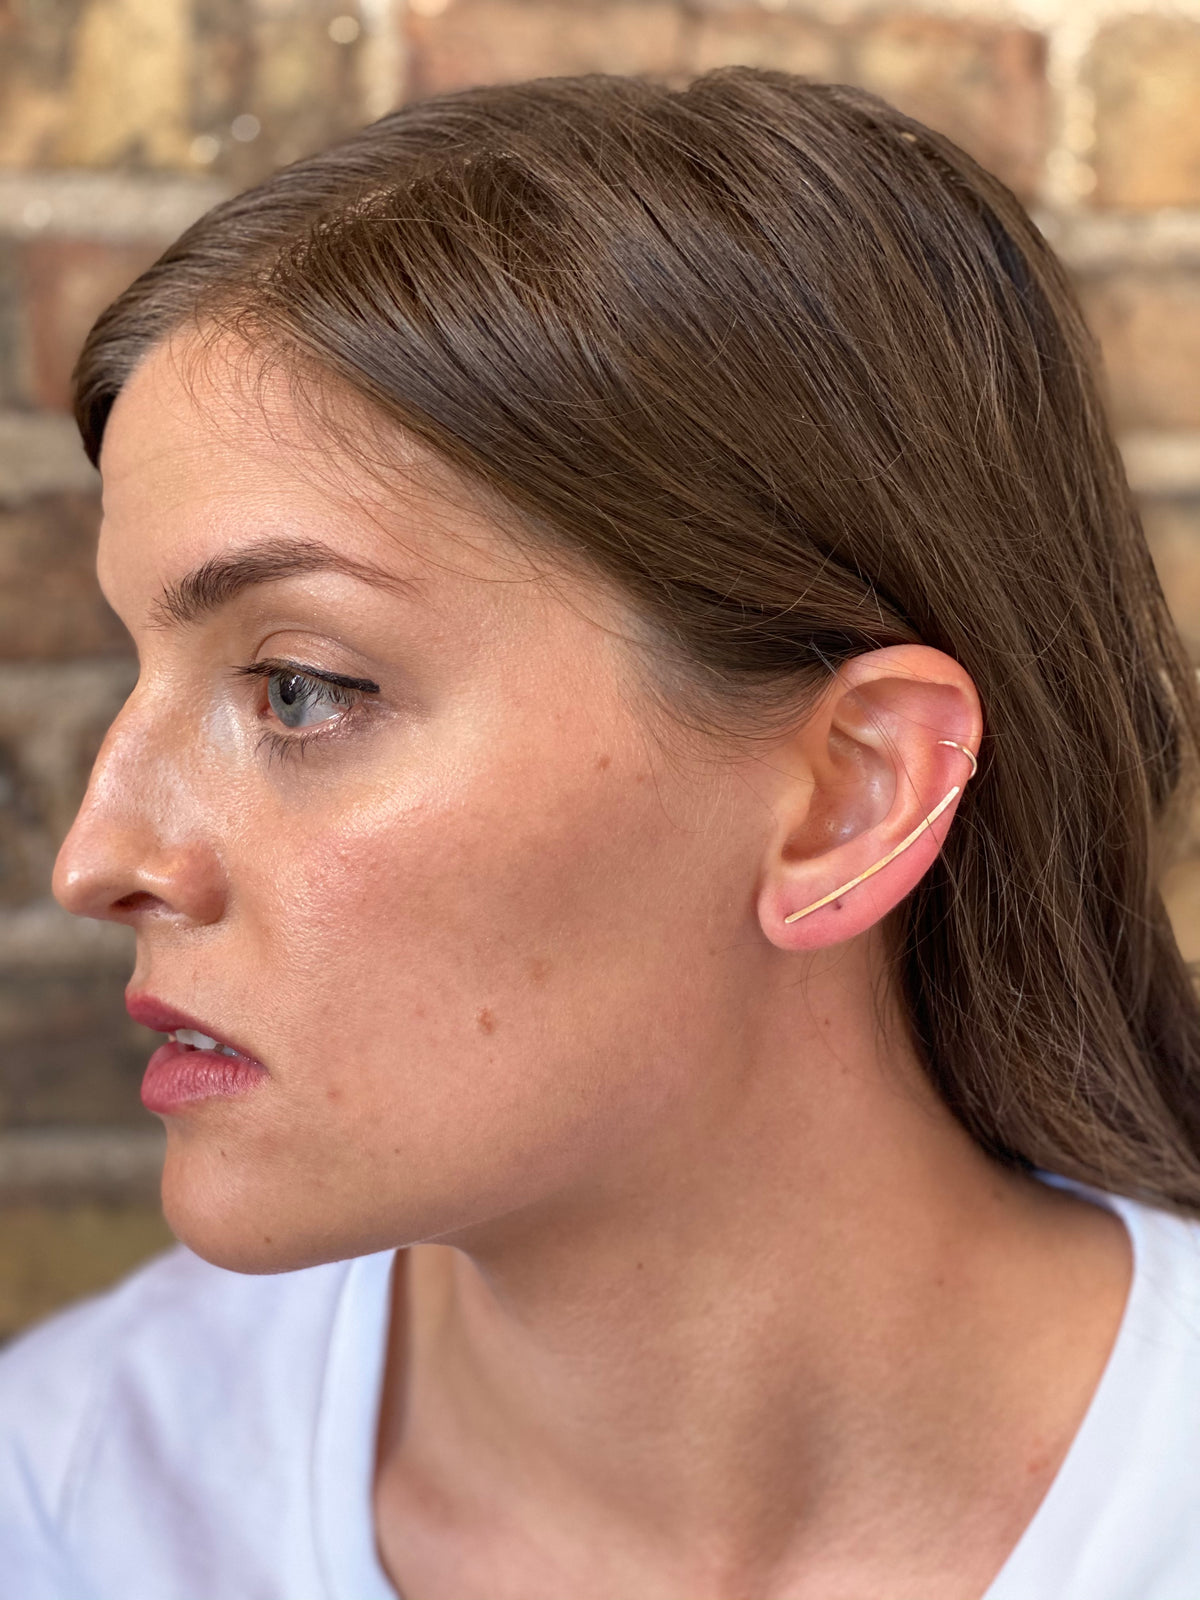 Long Hammered Ear Climbers - Sterling Silver, Gold Fill or Rose Gold Fill